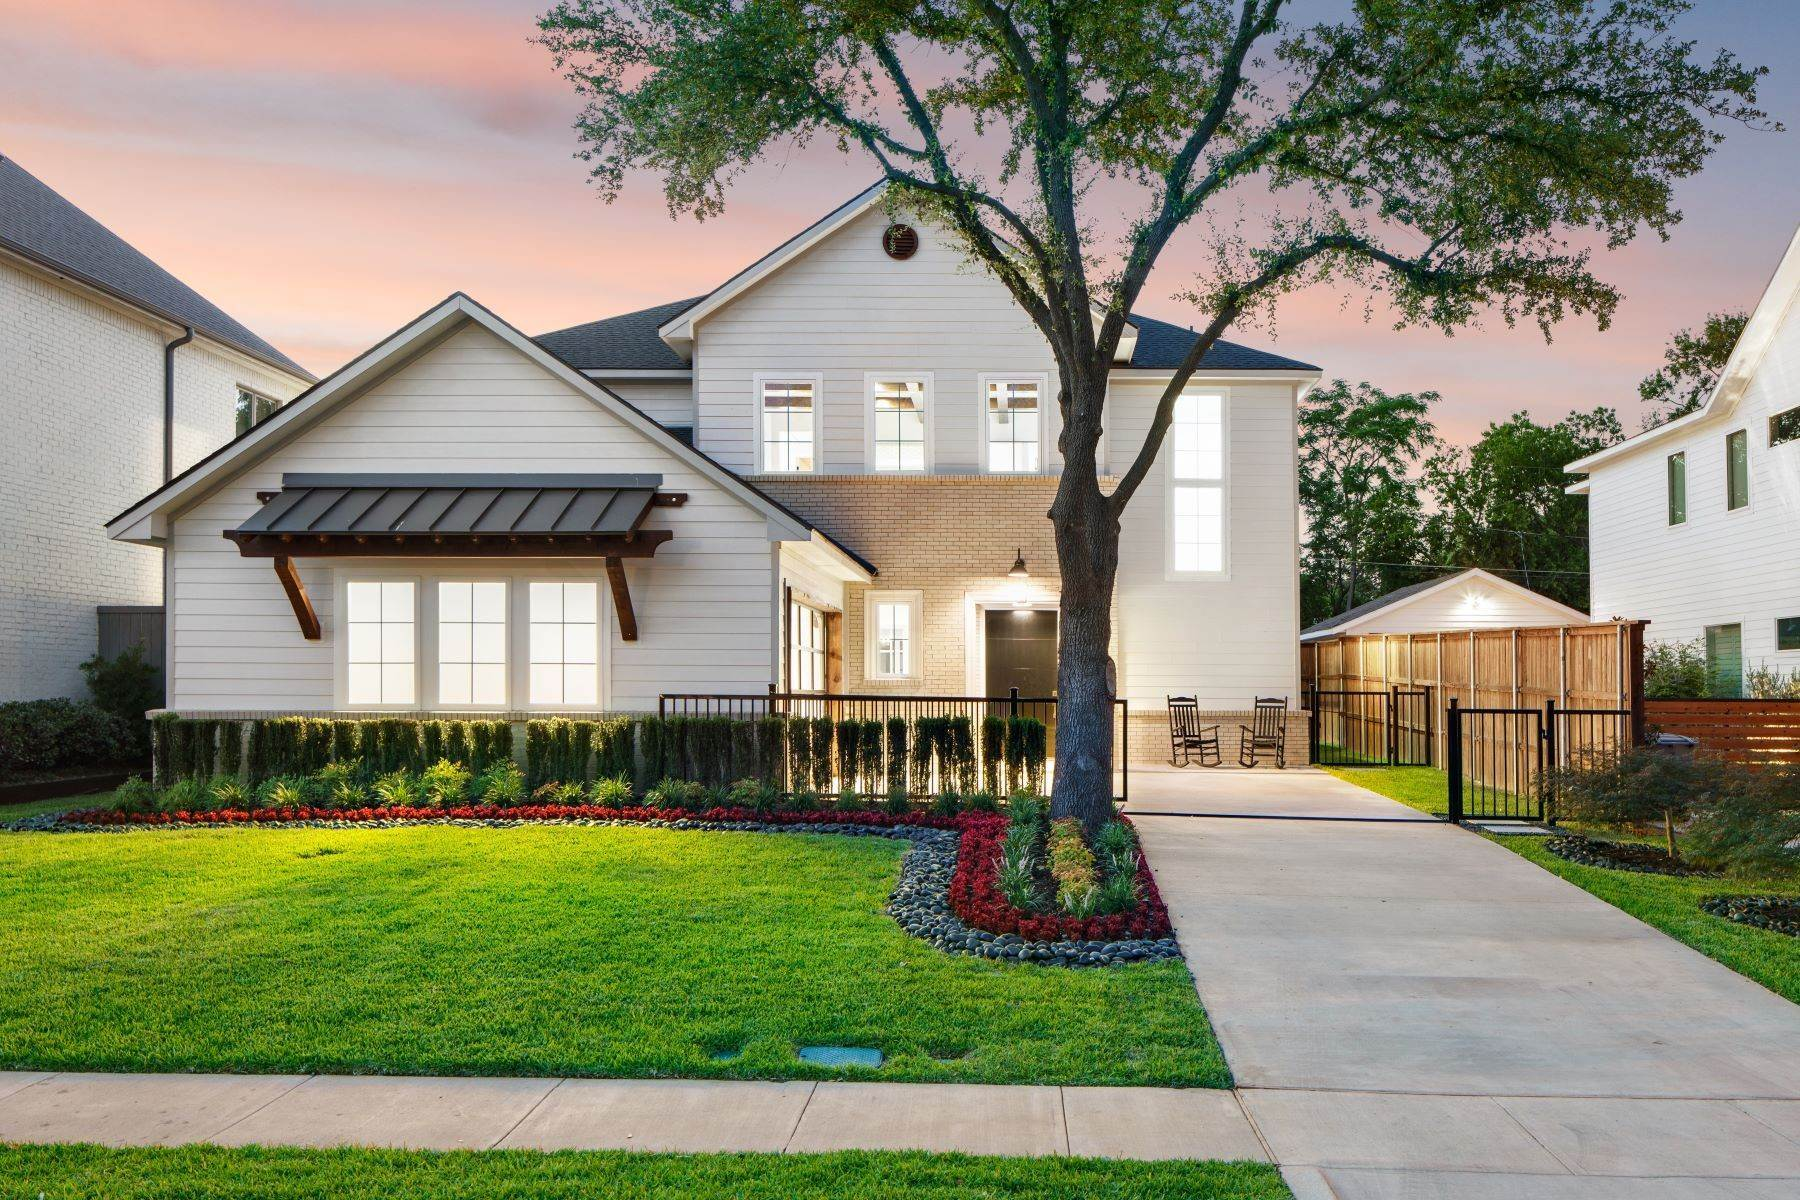 Single Family Homes for Sale at Midway Hollow Modern Transitional 3935 Lively Lane Dallas, Texas 75220 United States